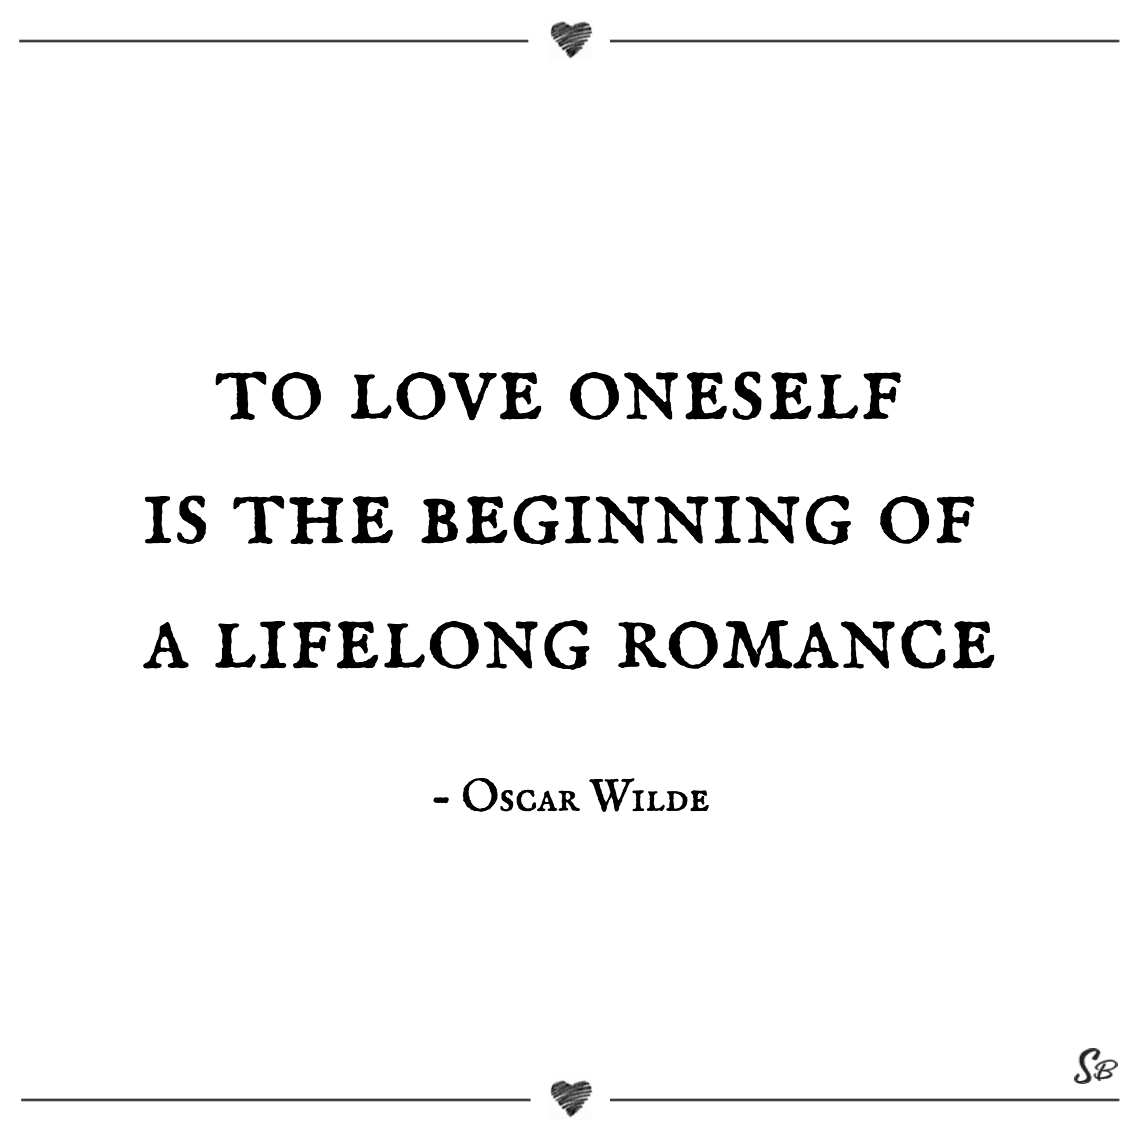 Image of: Love Quotes To Love Oneself Is The Beginning Of Lifelong Romance Oscar Wilde Being Single Quotes Pinterest 28 Brilliant Quotes On Being Single And Living Life Spirit Button